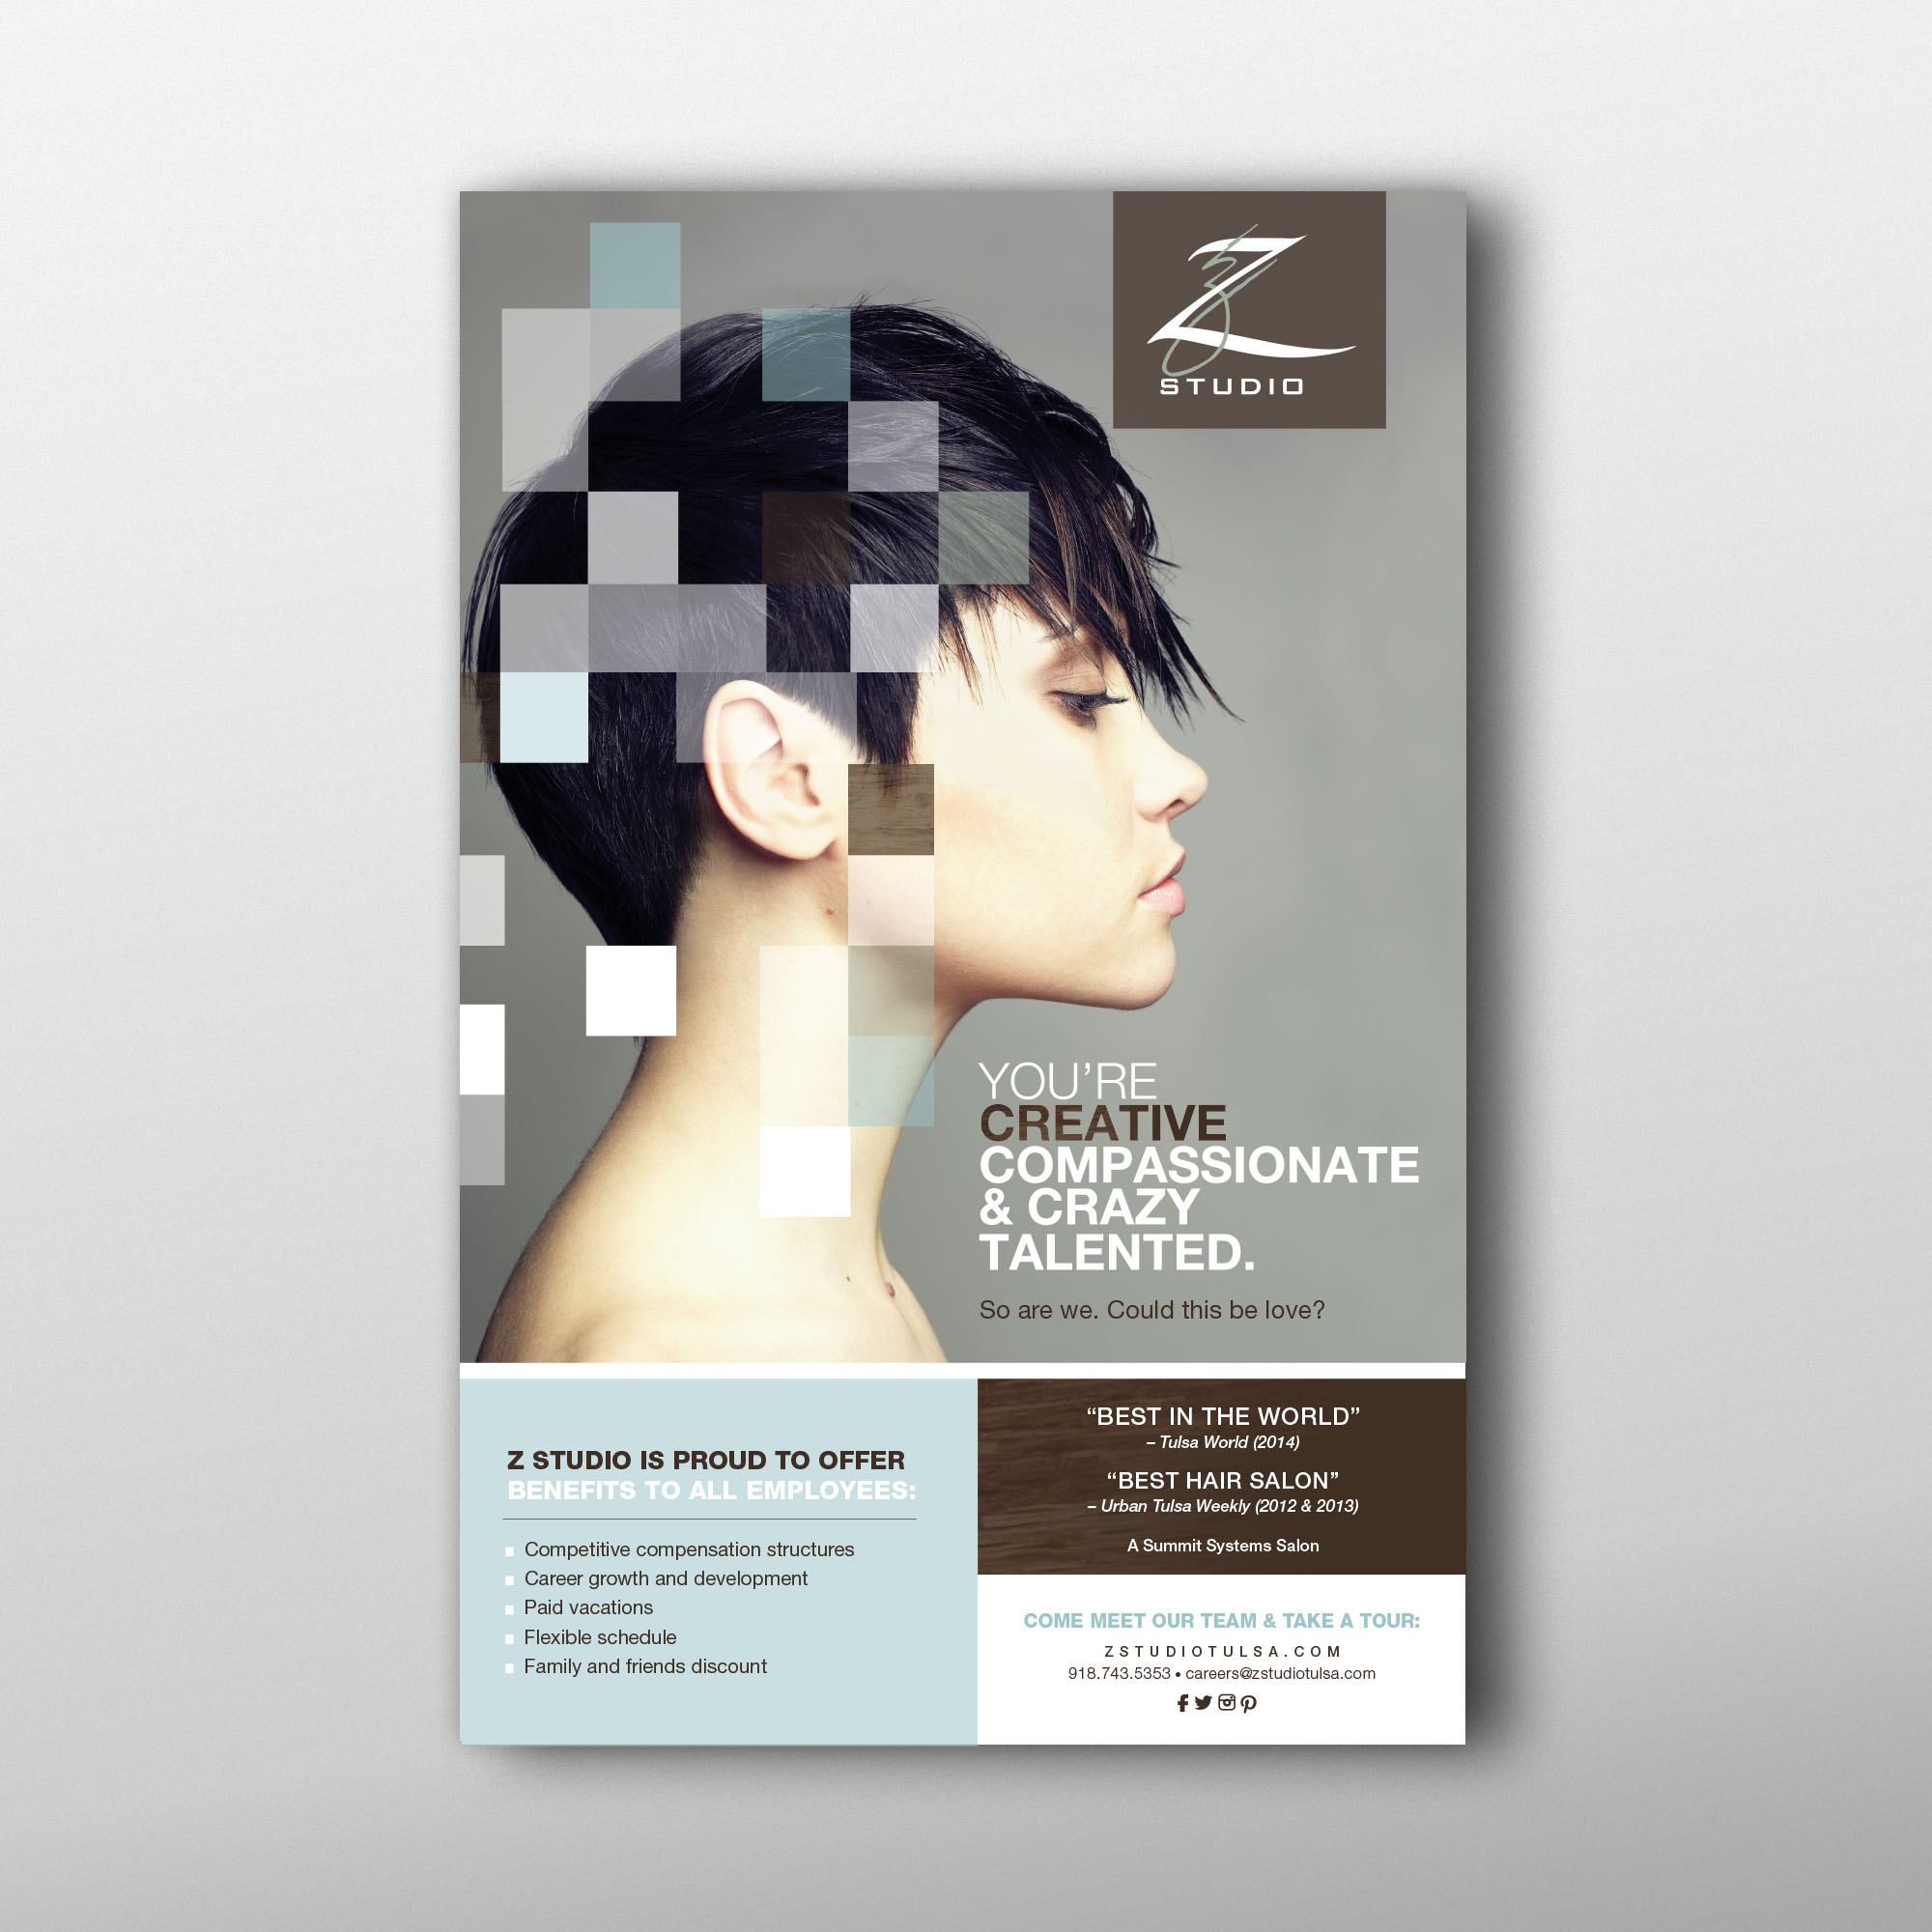 Time To Read A Full Brochure We Took Its Key Highlights And Had Them Made Into Large Format Posters Can Hang In Area Beauty Schools Barbee Says